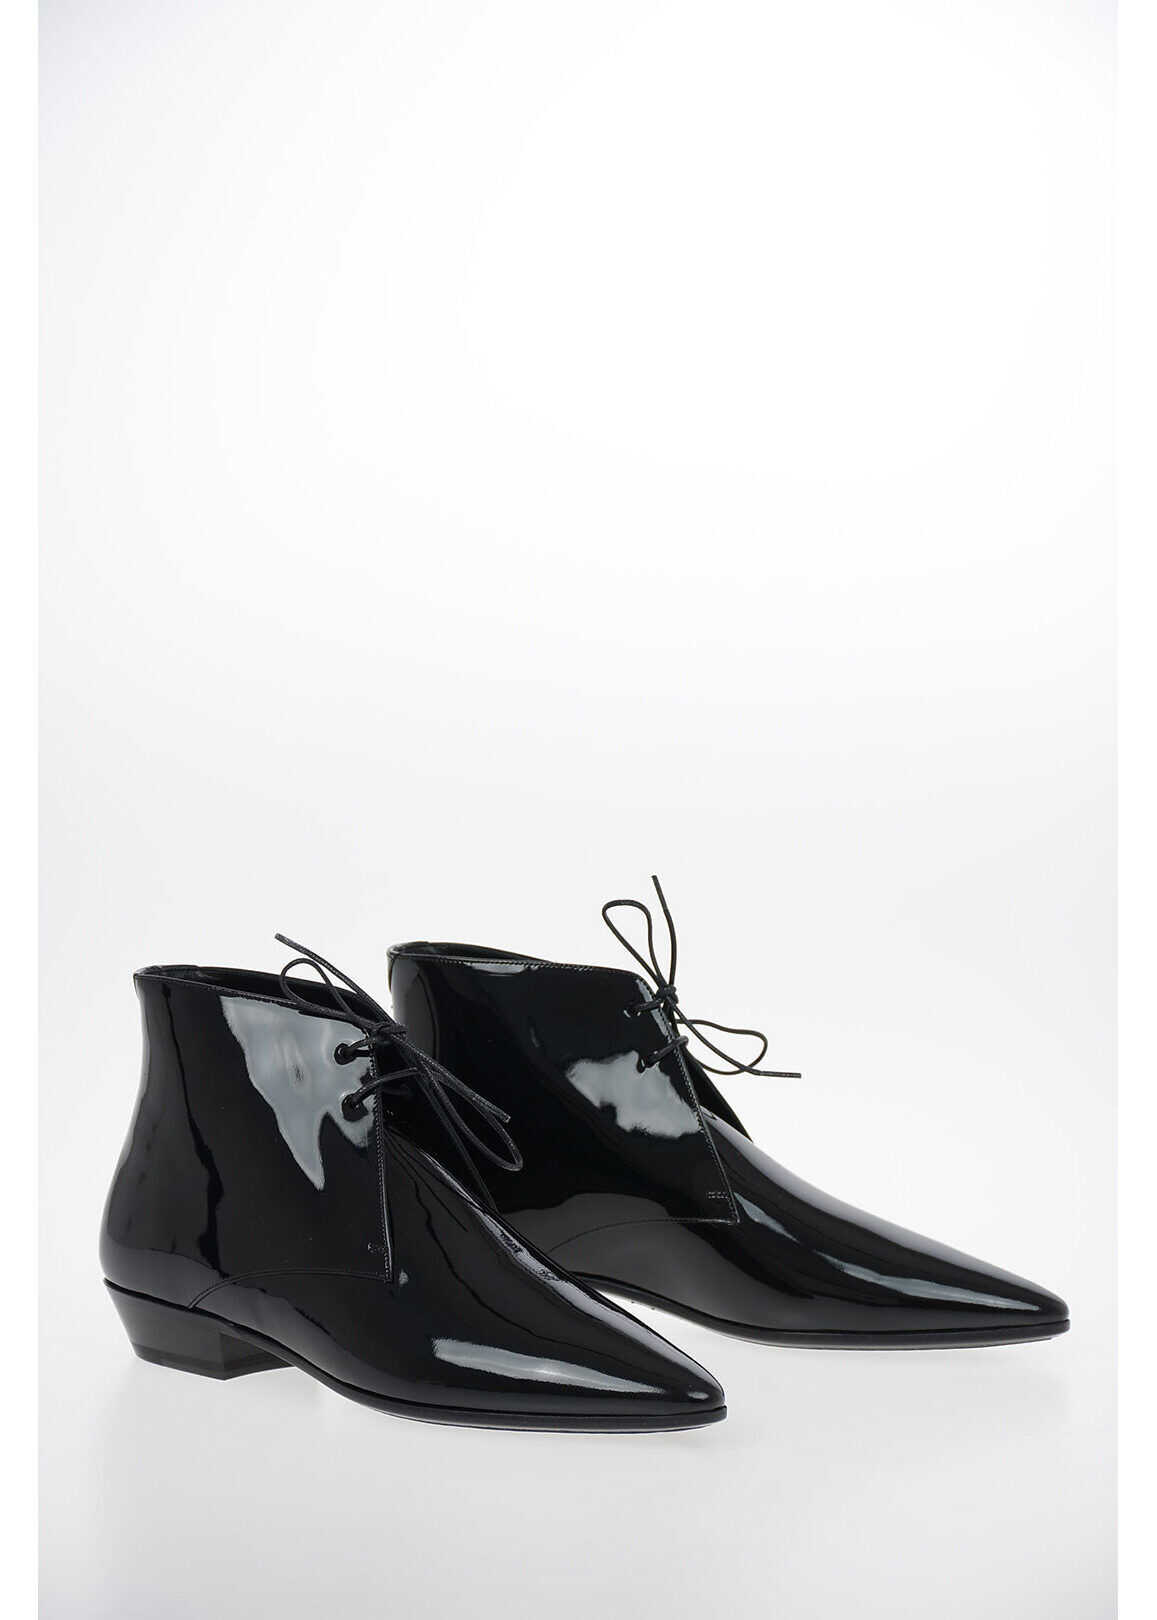 Saint Laurent Lacquered Leather JONAS Lace Up Booties BLACK imagine b-mall.ro